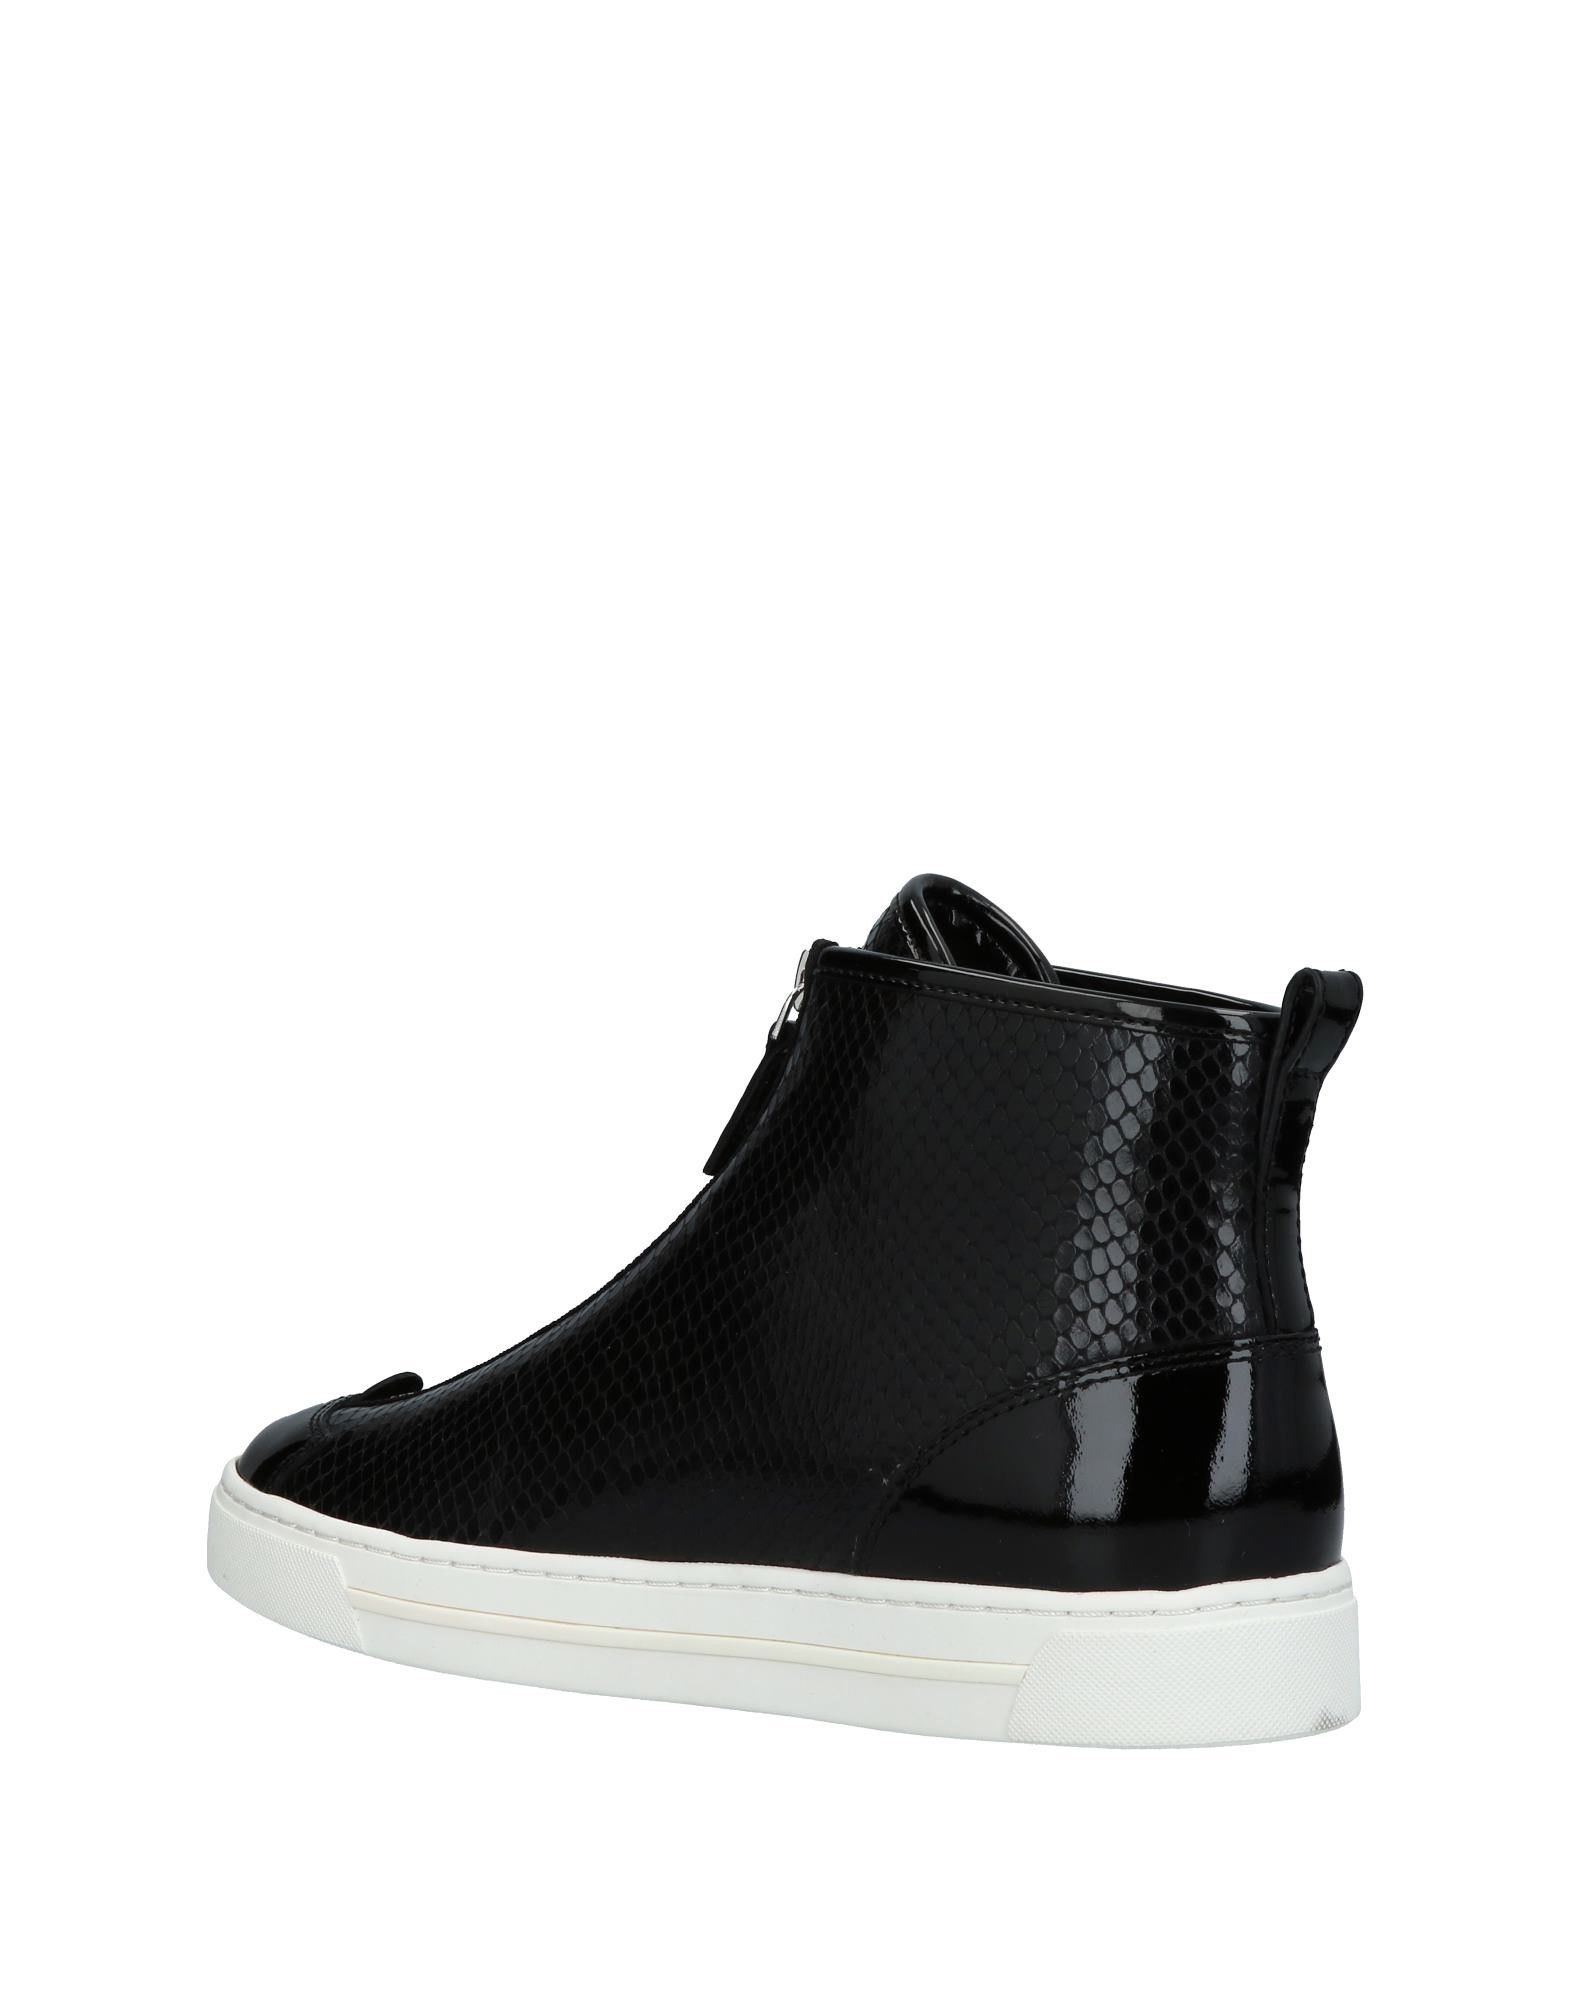 Marc By Marc Jacobs Sneakers Marc - Women Marc By Marc Sneakers Jacobs Sneakers online on  Canada - 11381193NI 9a7117